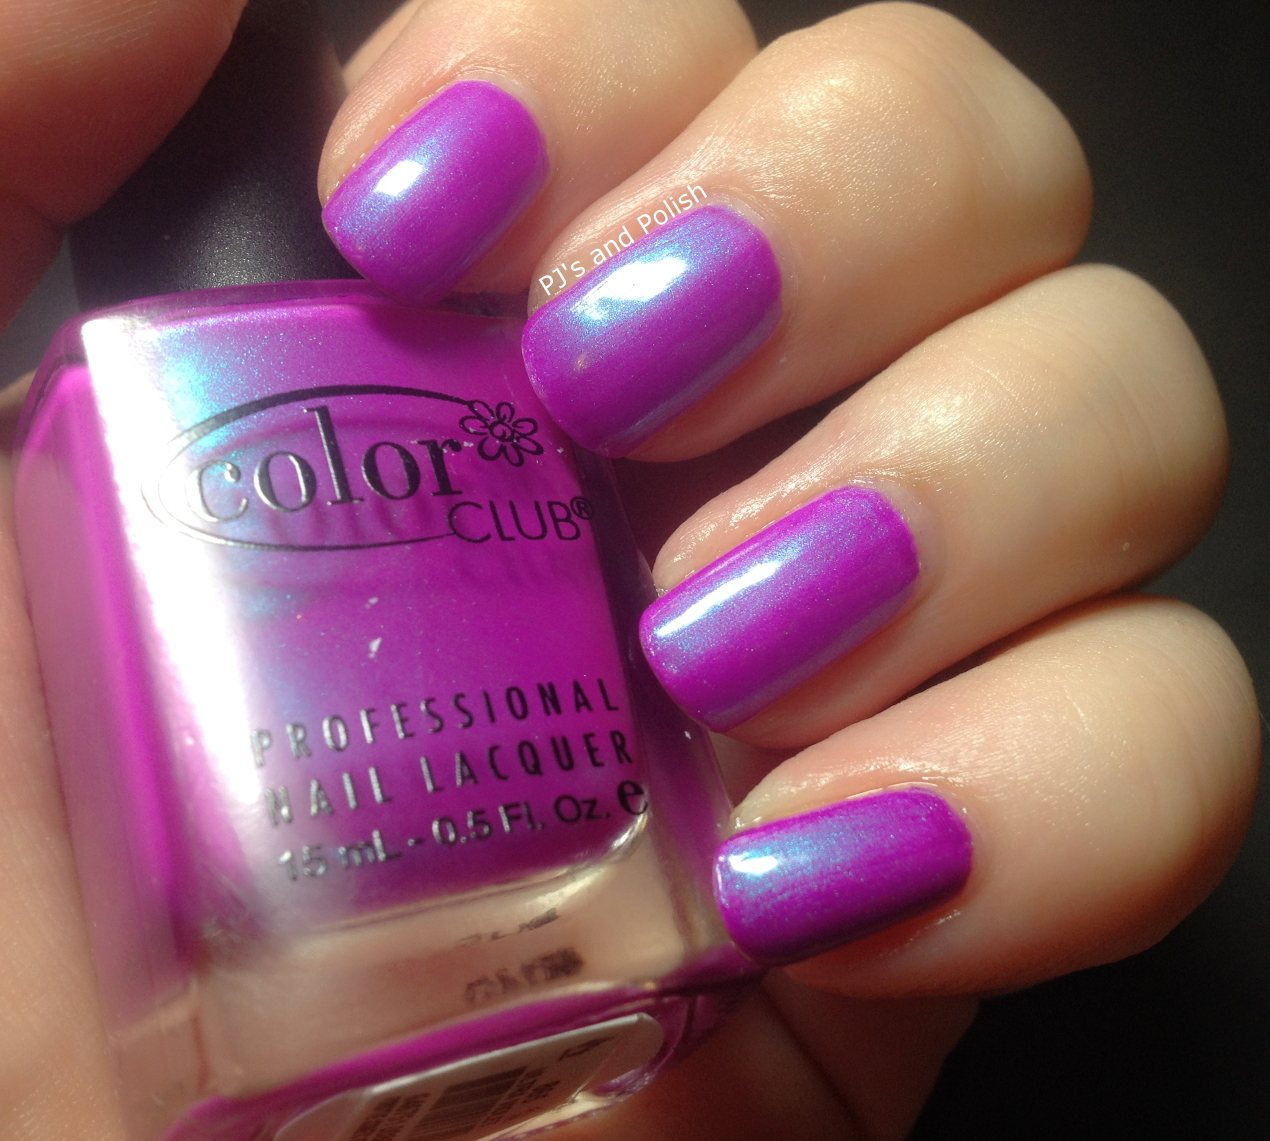 Swatch and Review Color Club Ultra Violet Sally Hansen White On HK Girl